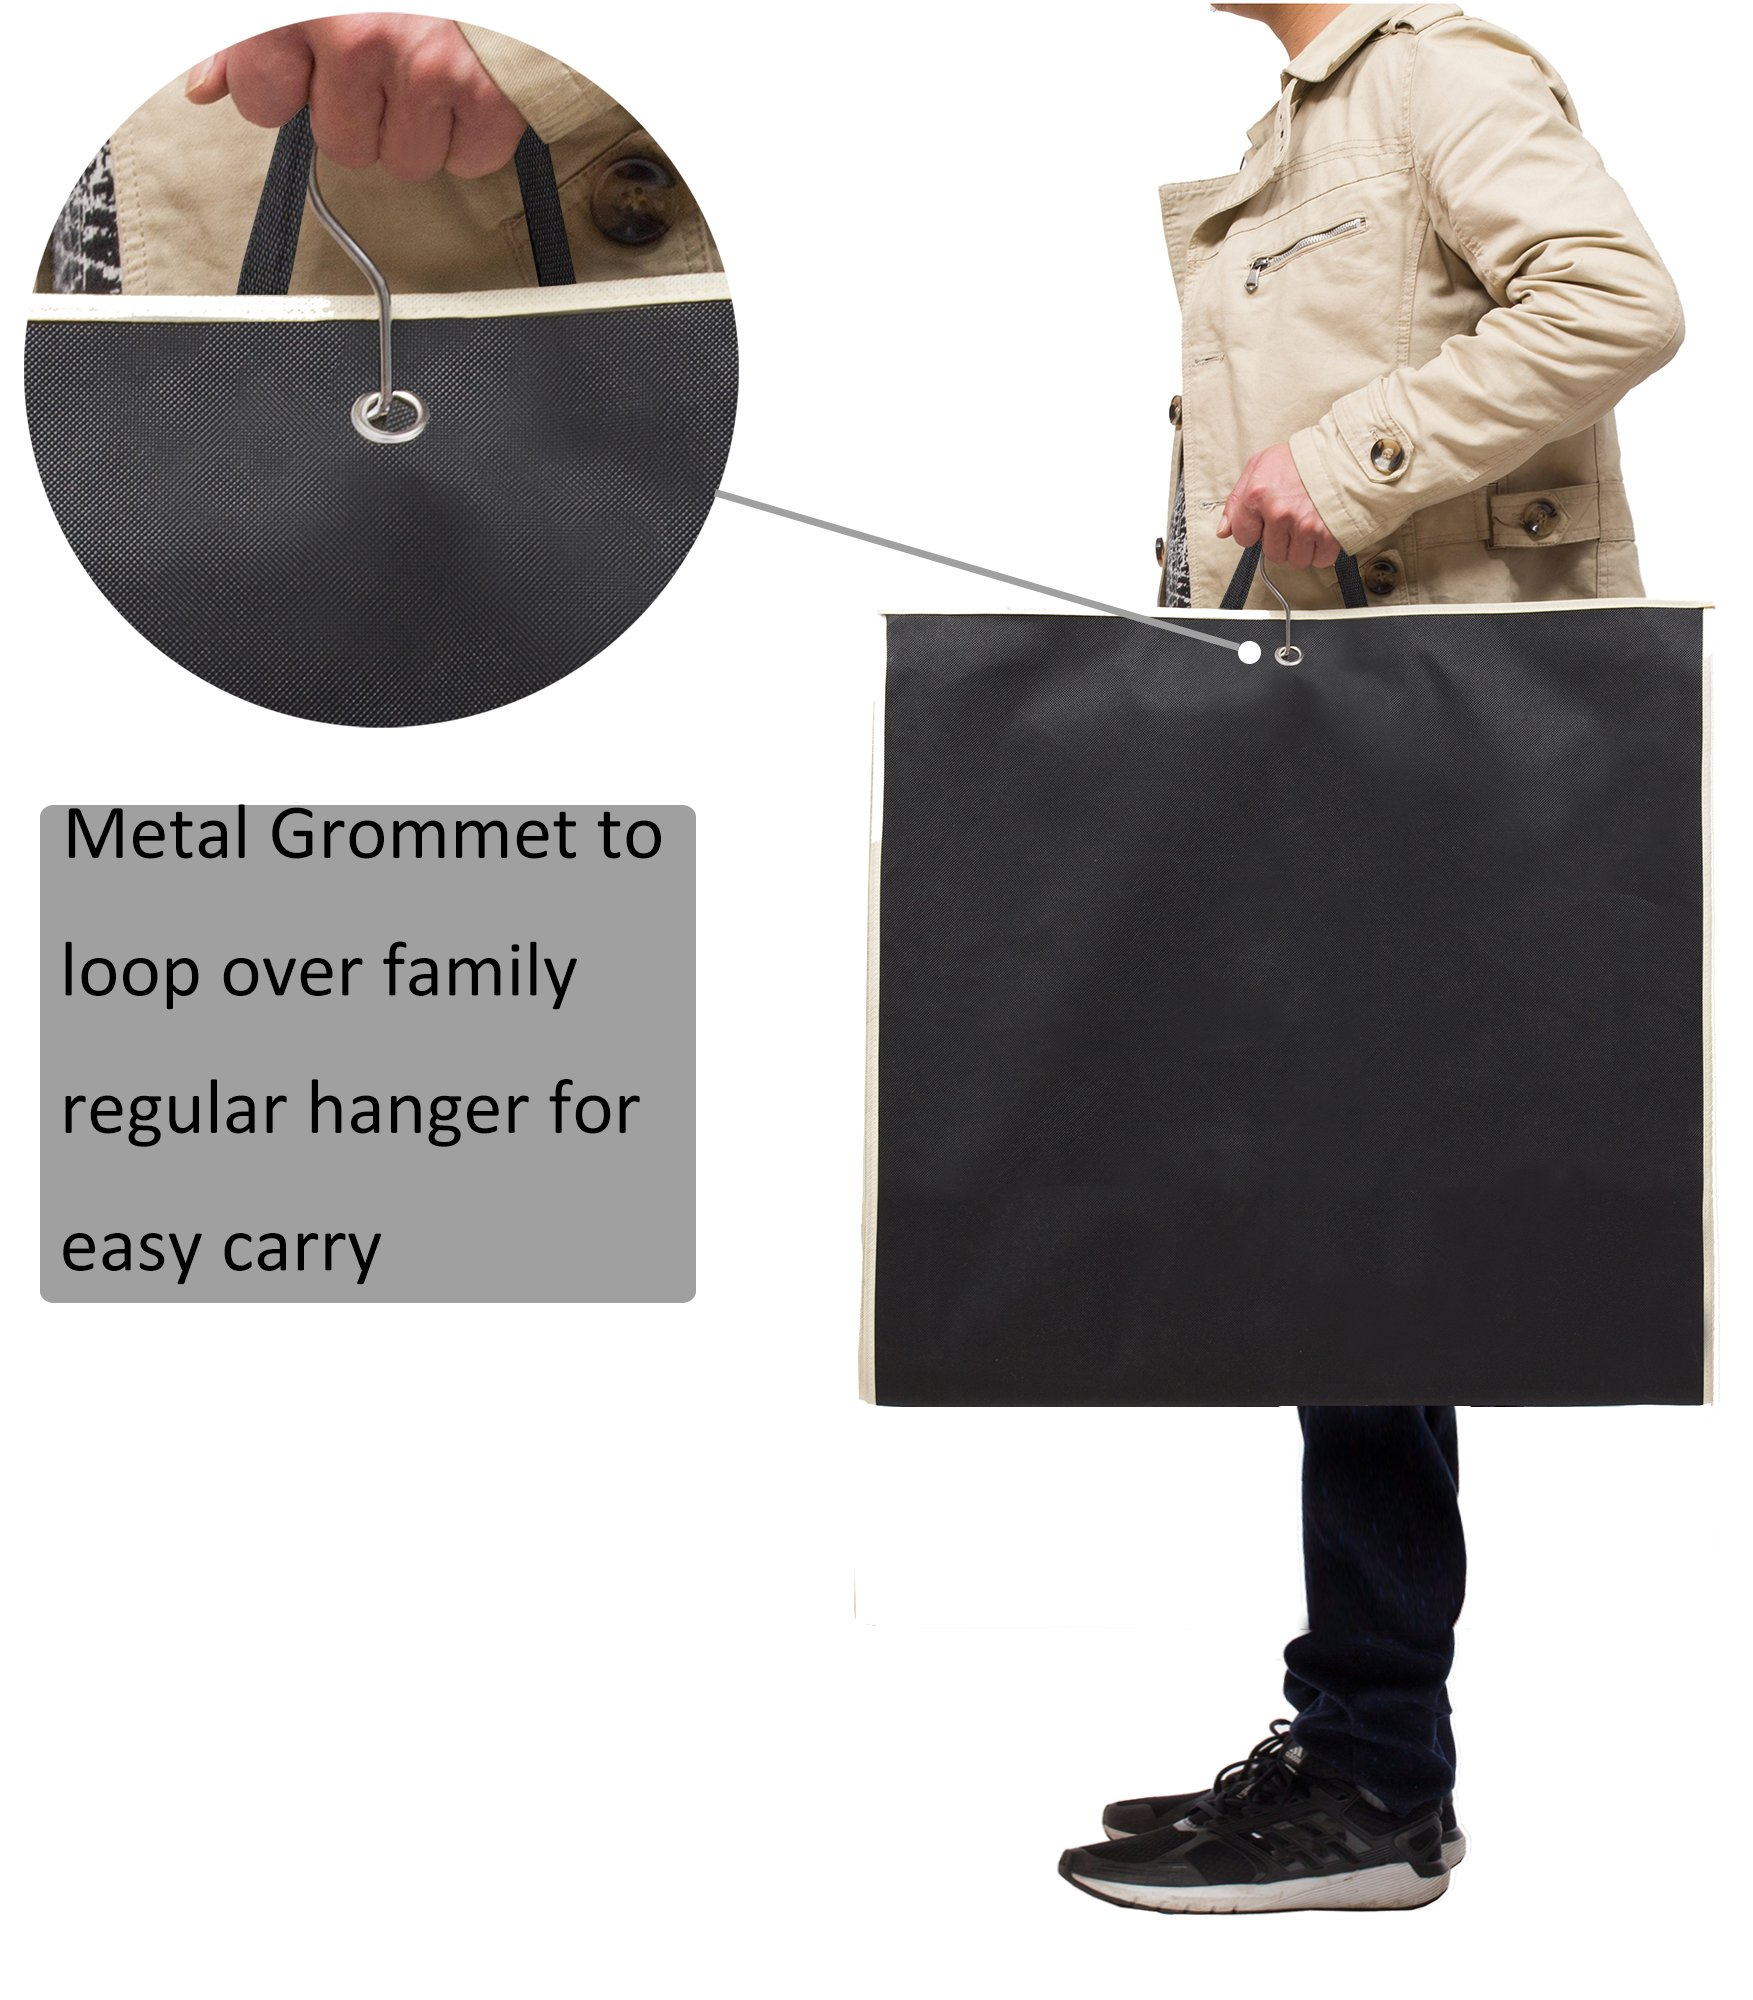 MISSLO 43'' Gusseted Travel Garment Bag with Accessories Zipper Pocket Breathable Suit Garment Cover for Shirts Dresses Coats, Black by MISSLO (Image #7)